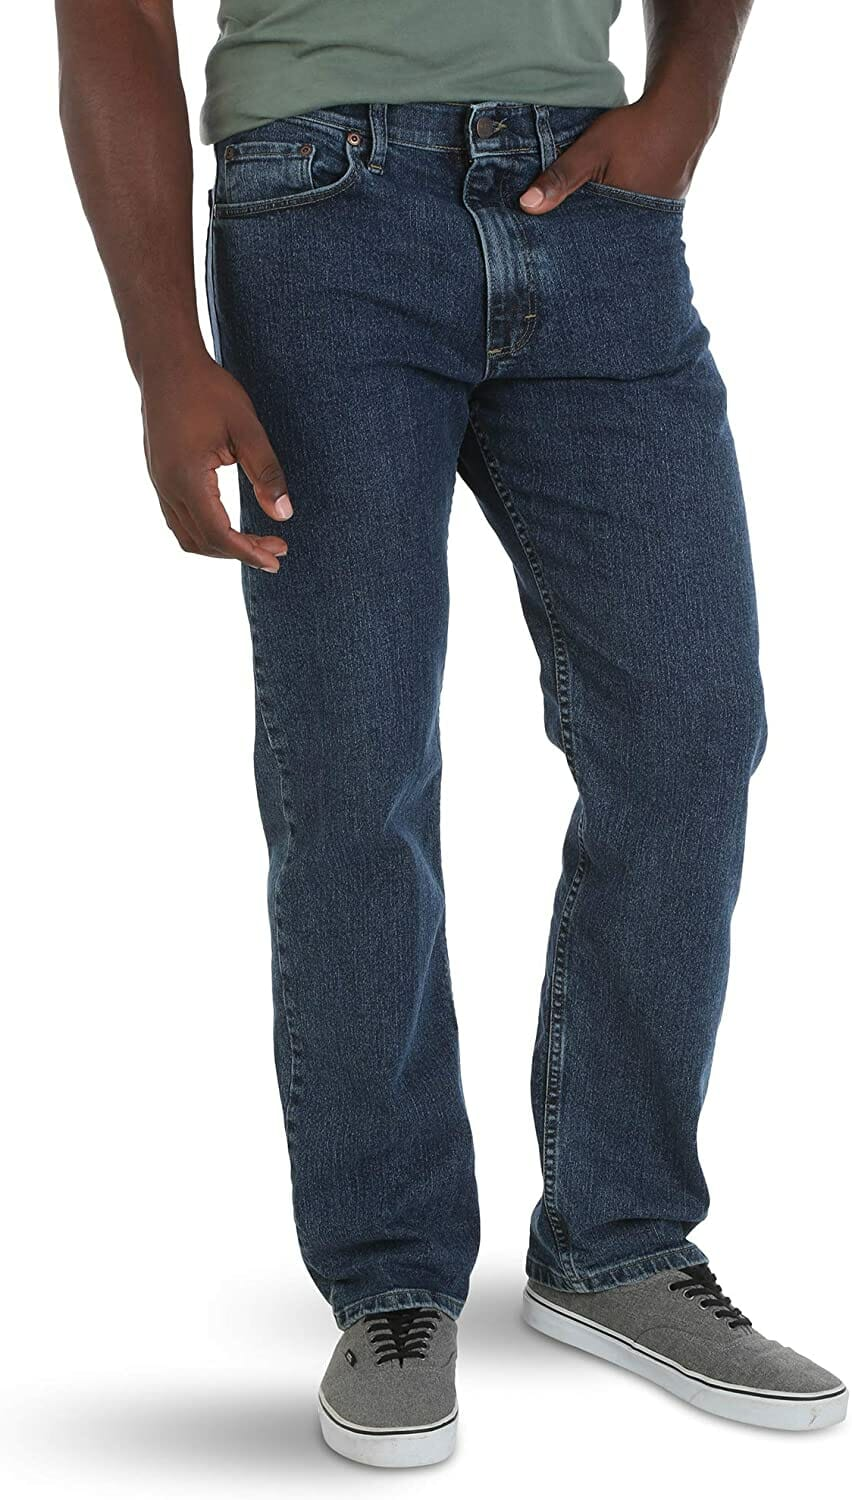 Wrangler Relaxed Fit Jean Dark Stonewash Hombre